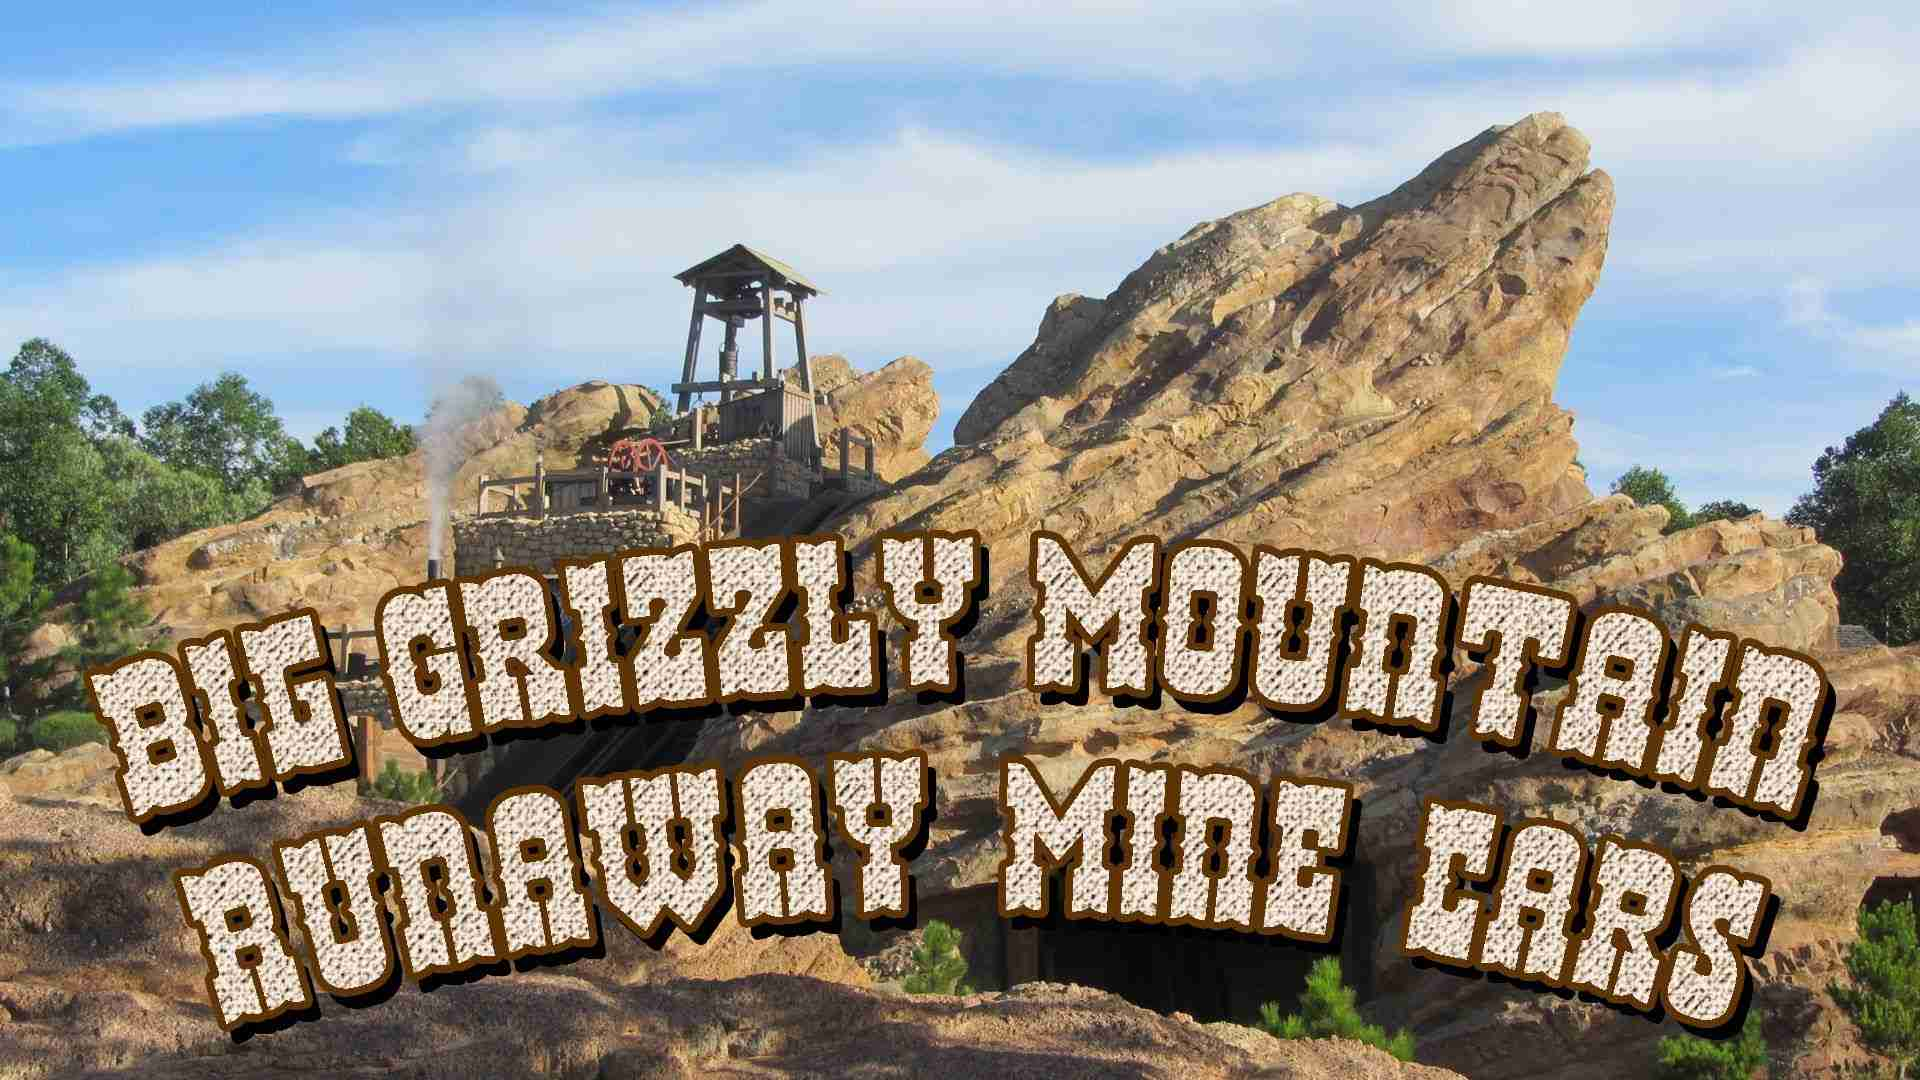 HKDL - Big Grizzly Mountain Runaway Mine Cars 灰熊山極速礦車 (Front Row POV) - YouTube